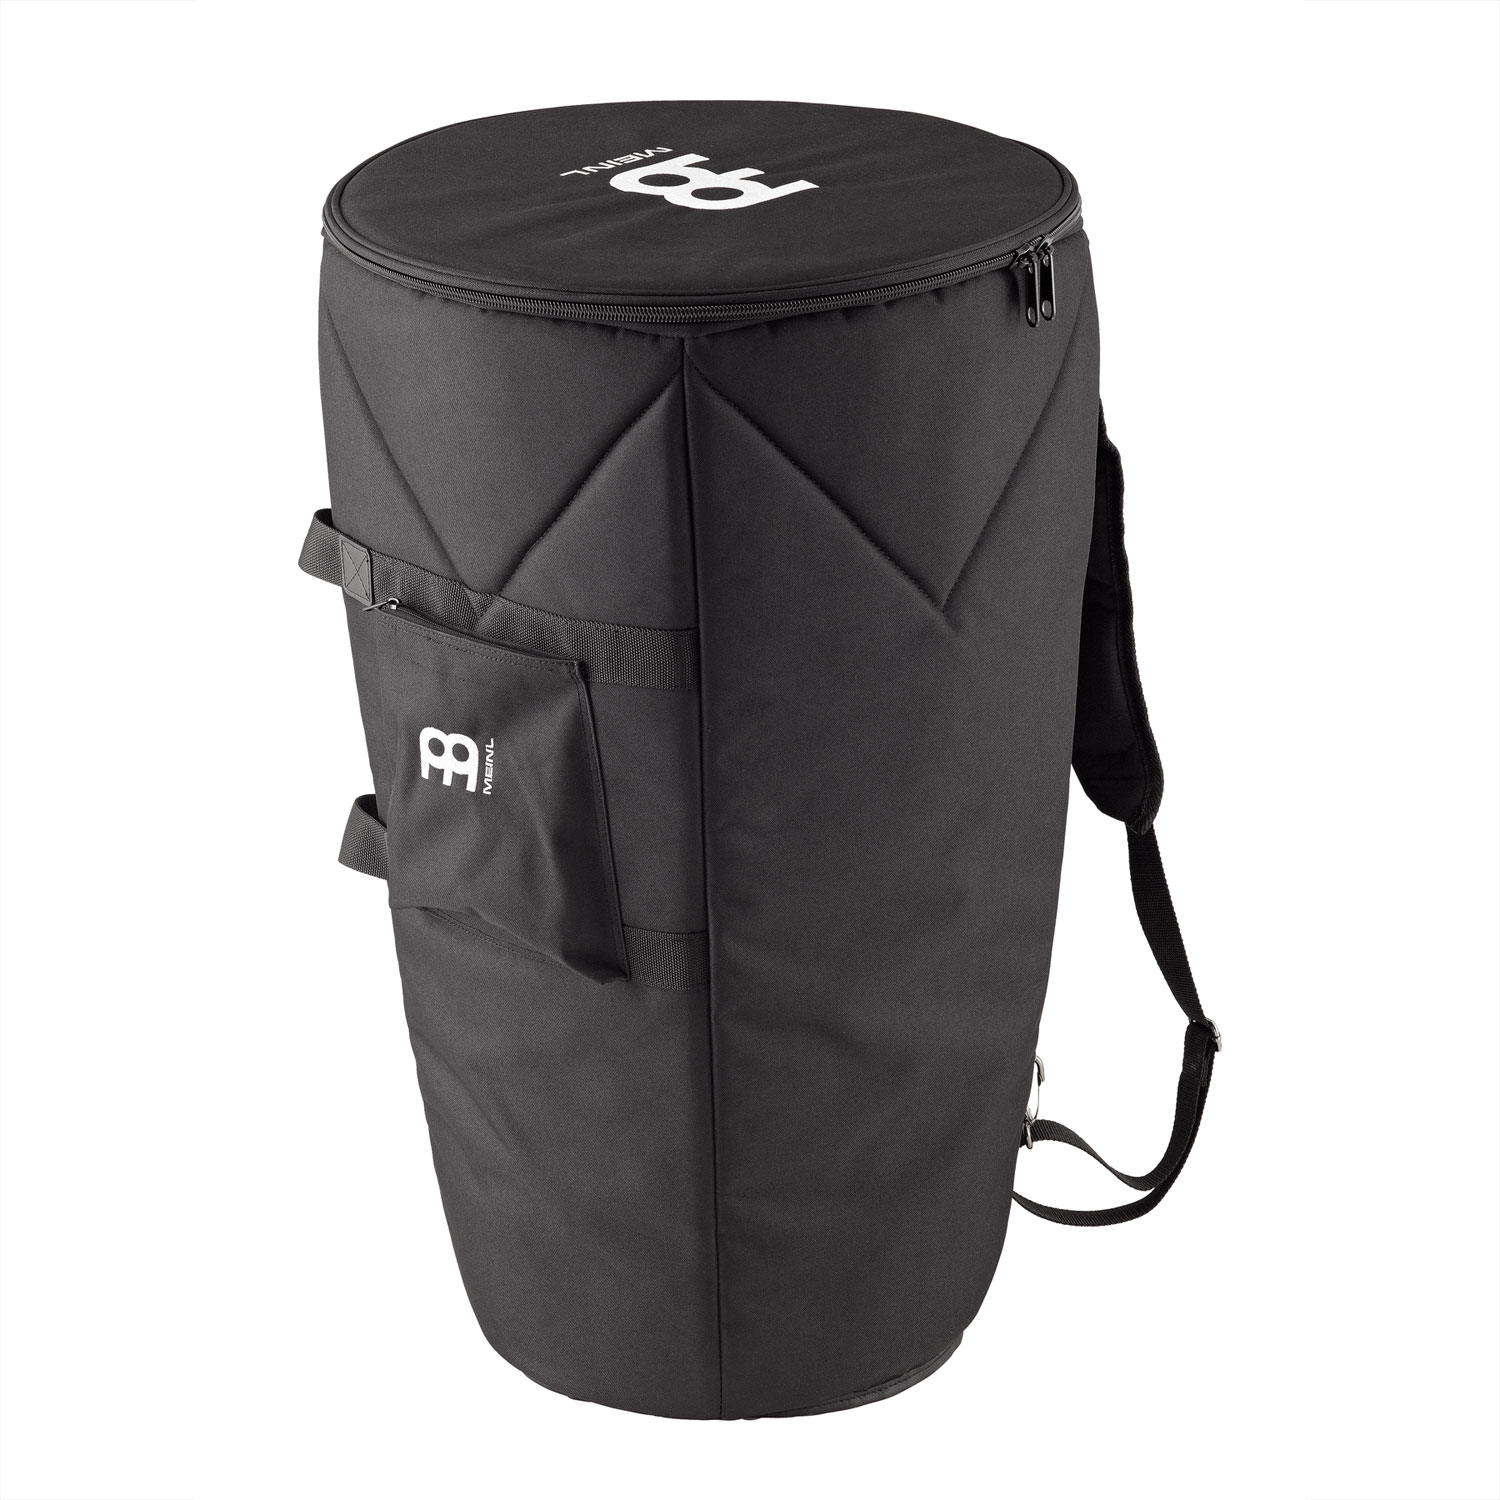 "Meinl 14"" (Diameter) x 28"" (Deep) Professional Timba Bag"